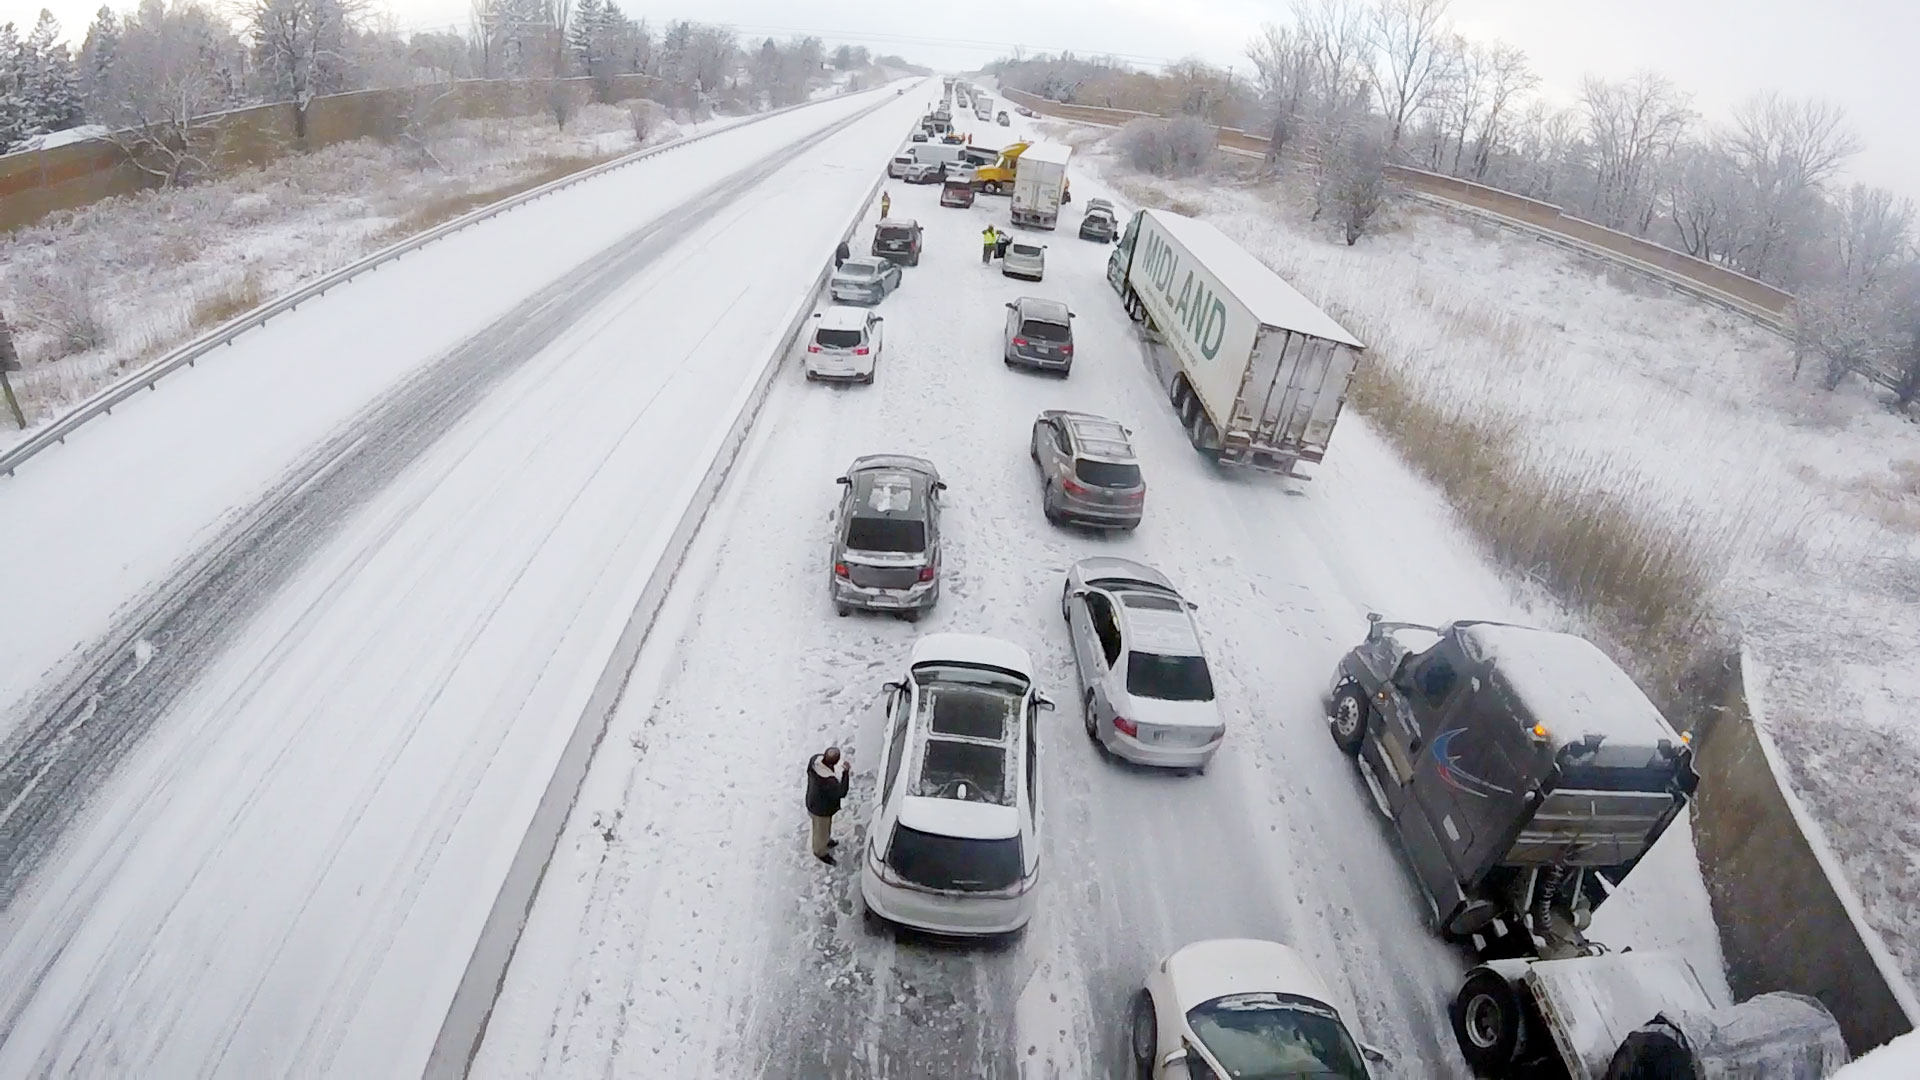 Highway 401 reopens in Bowmanville following crashes, whiteout